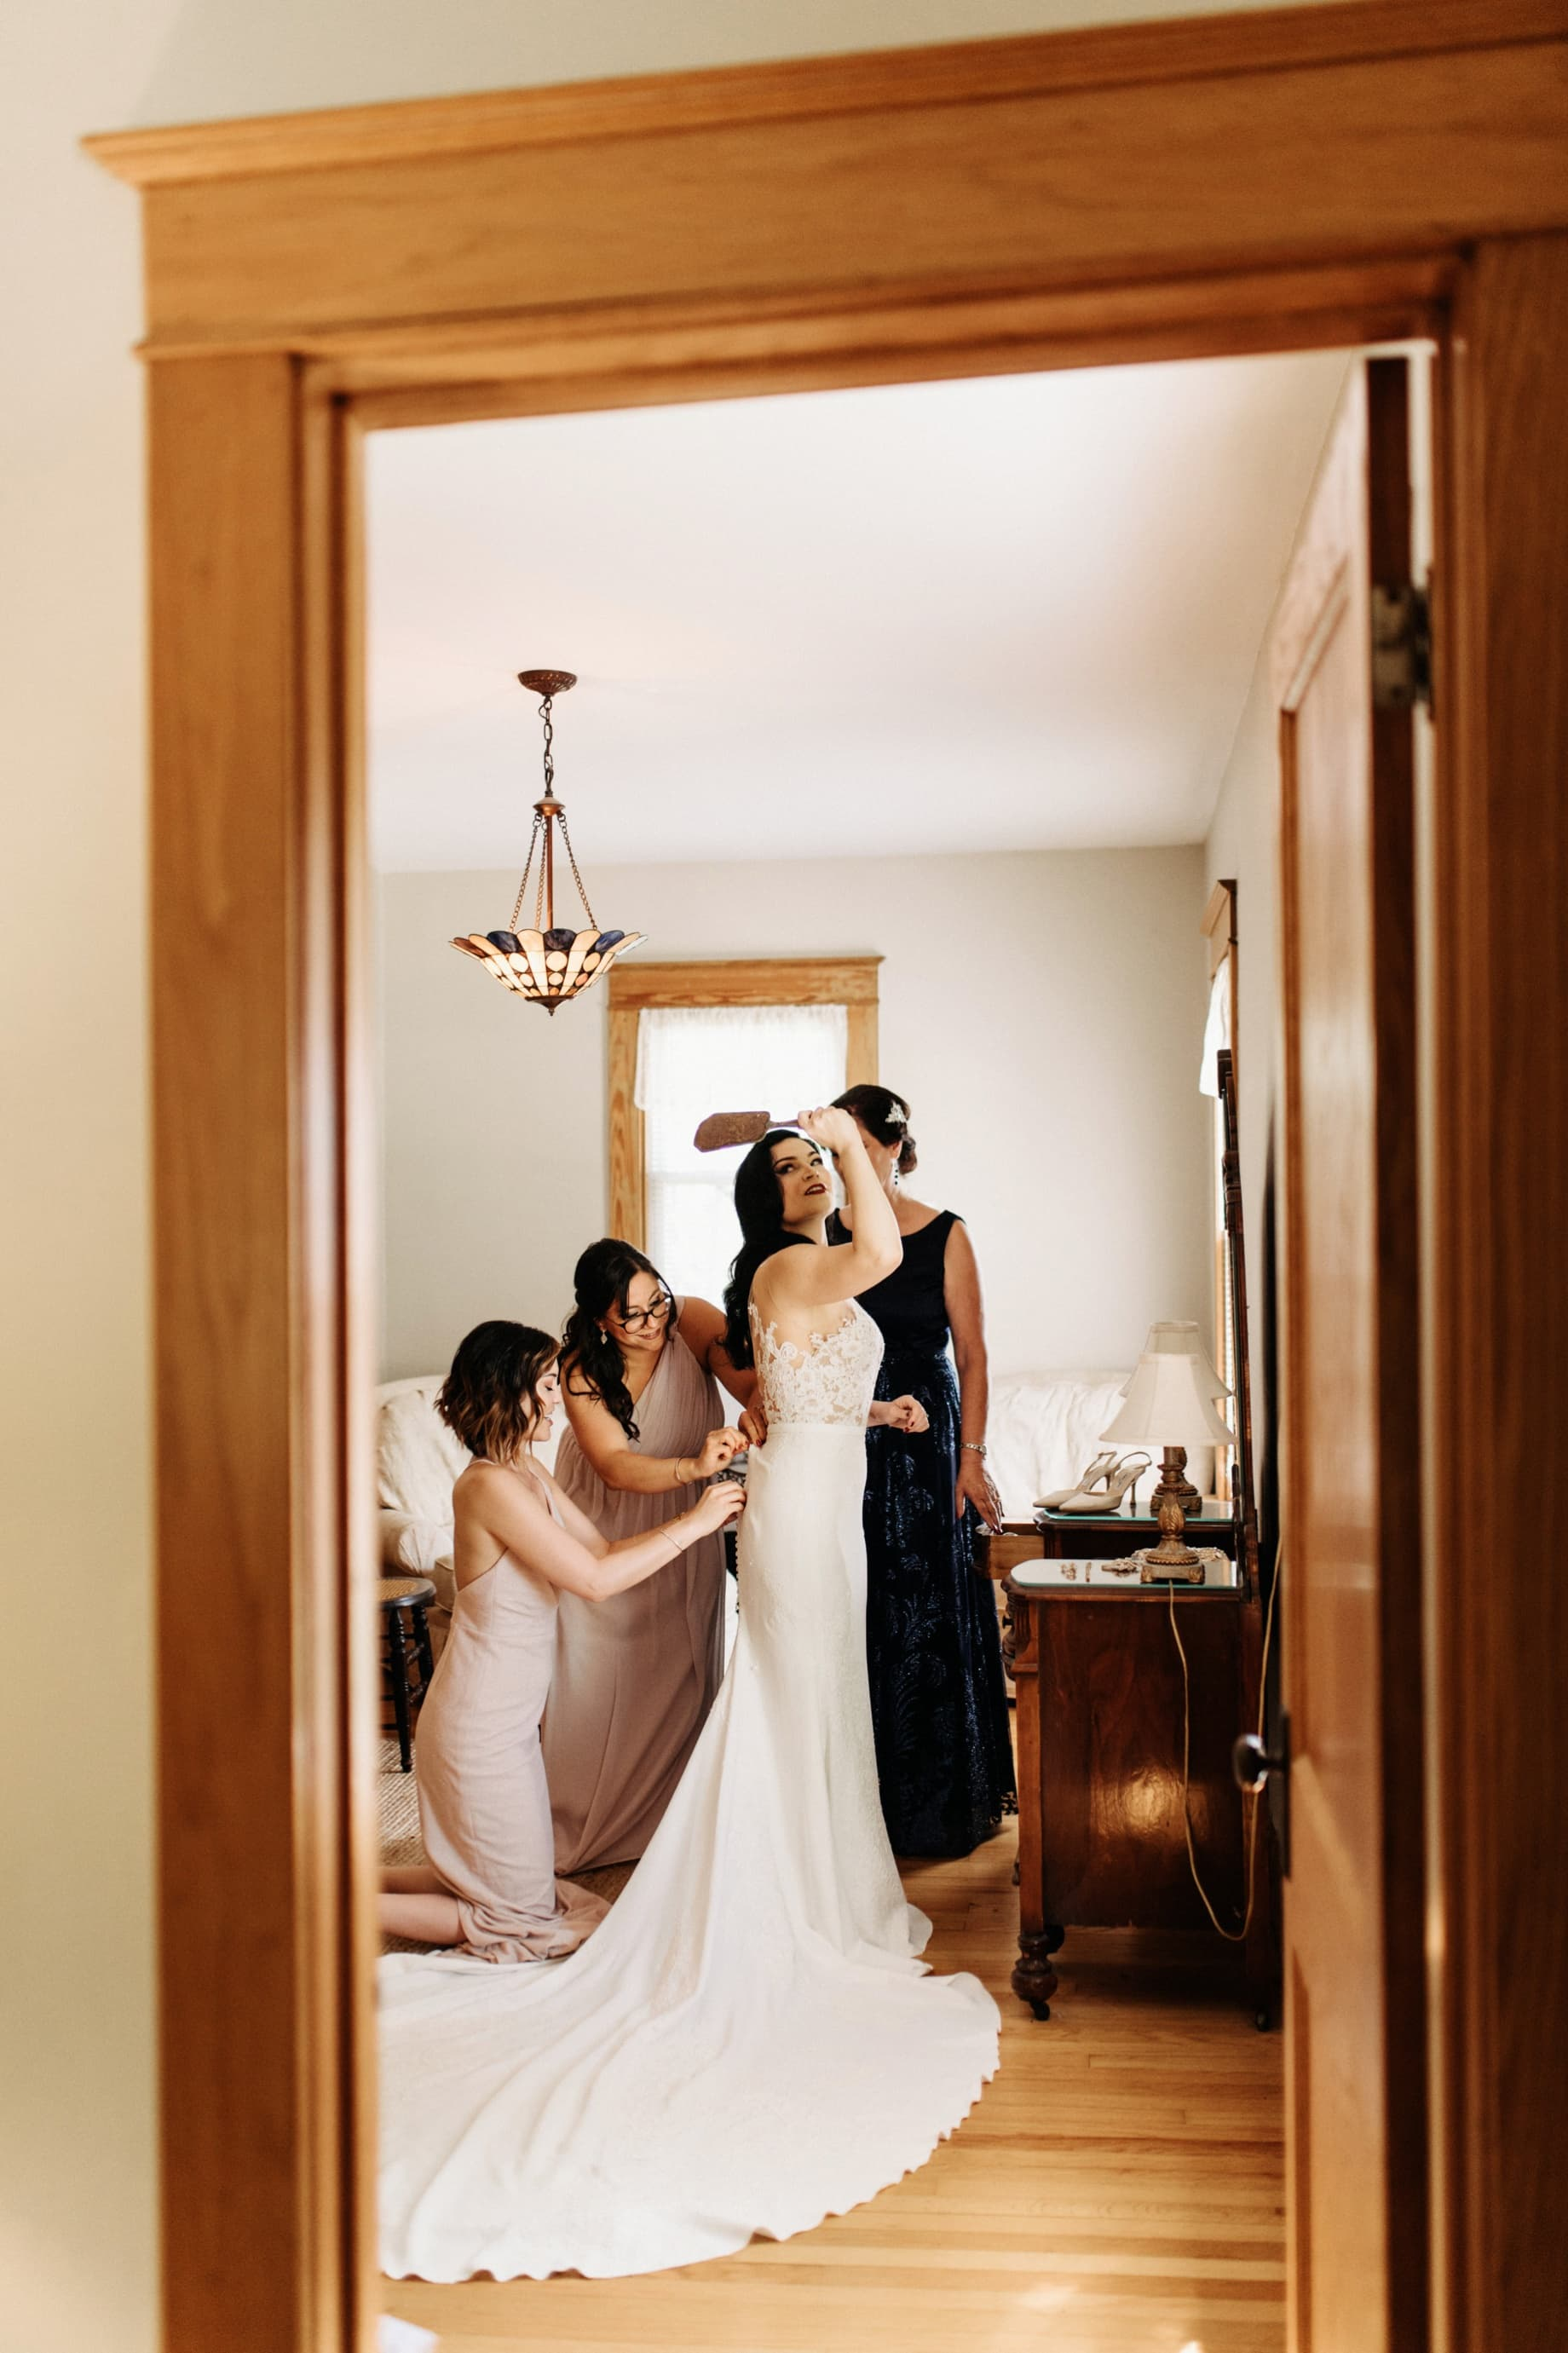 Bride getting into wedding dress at the wellers hospitality house